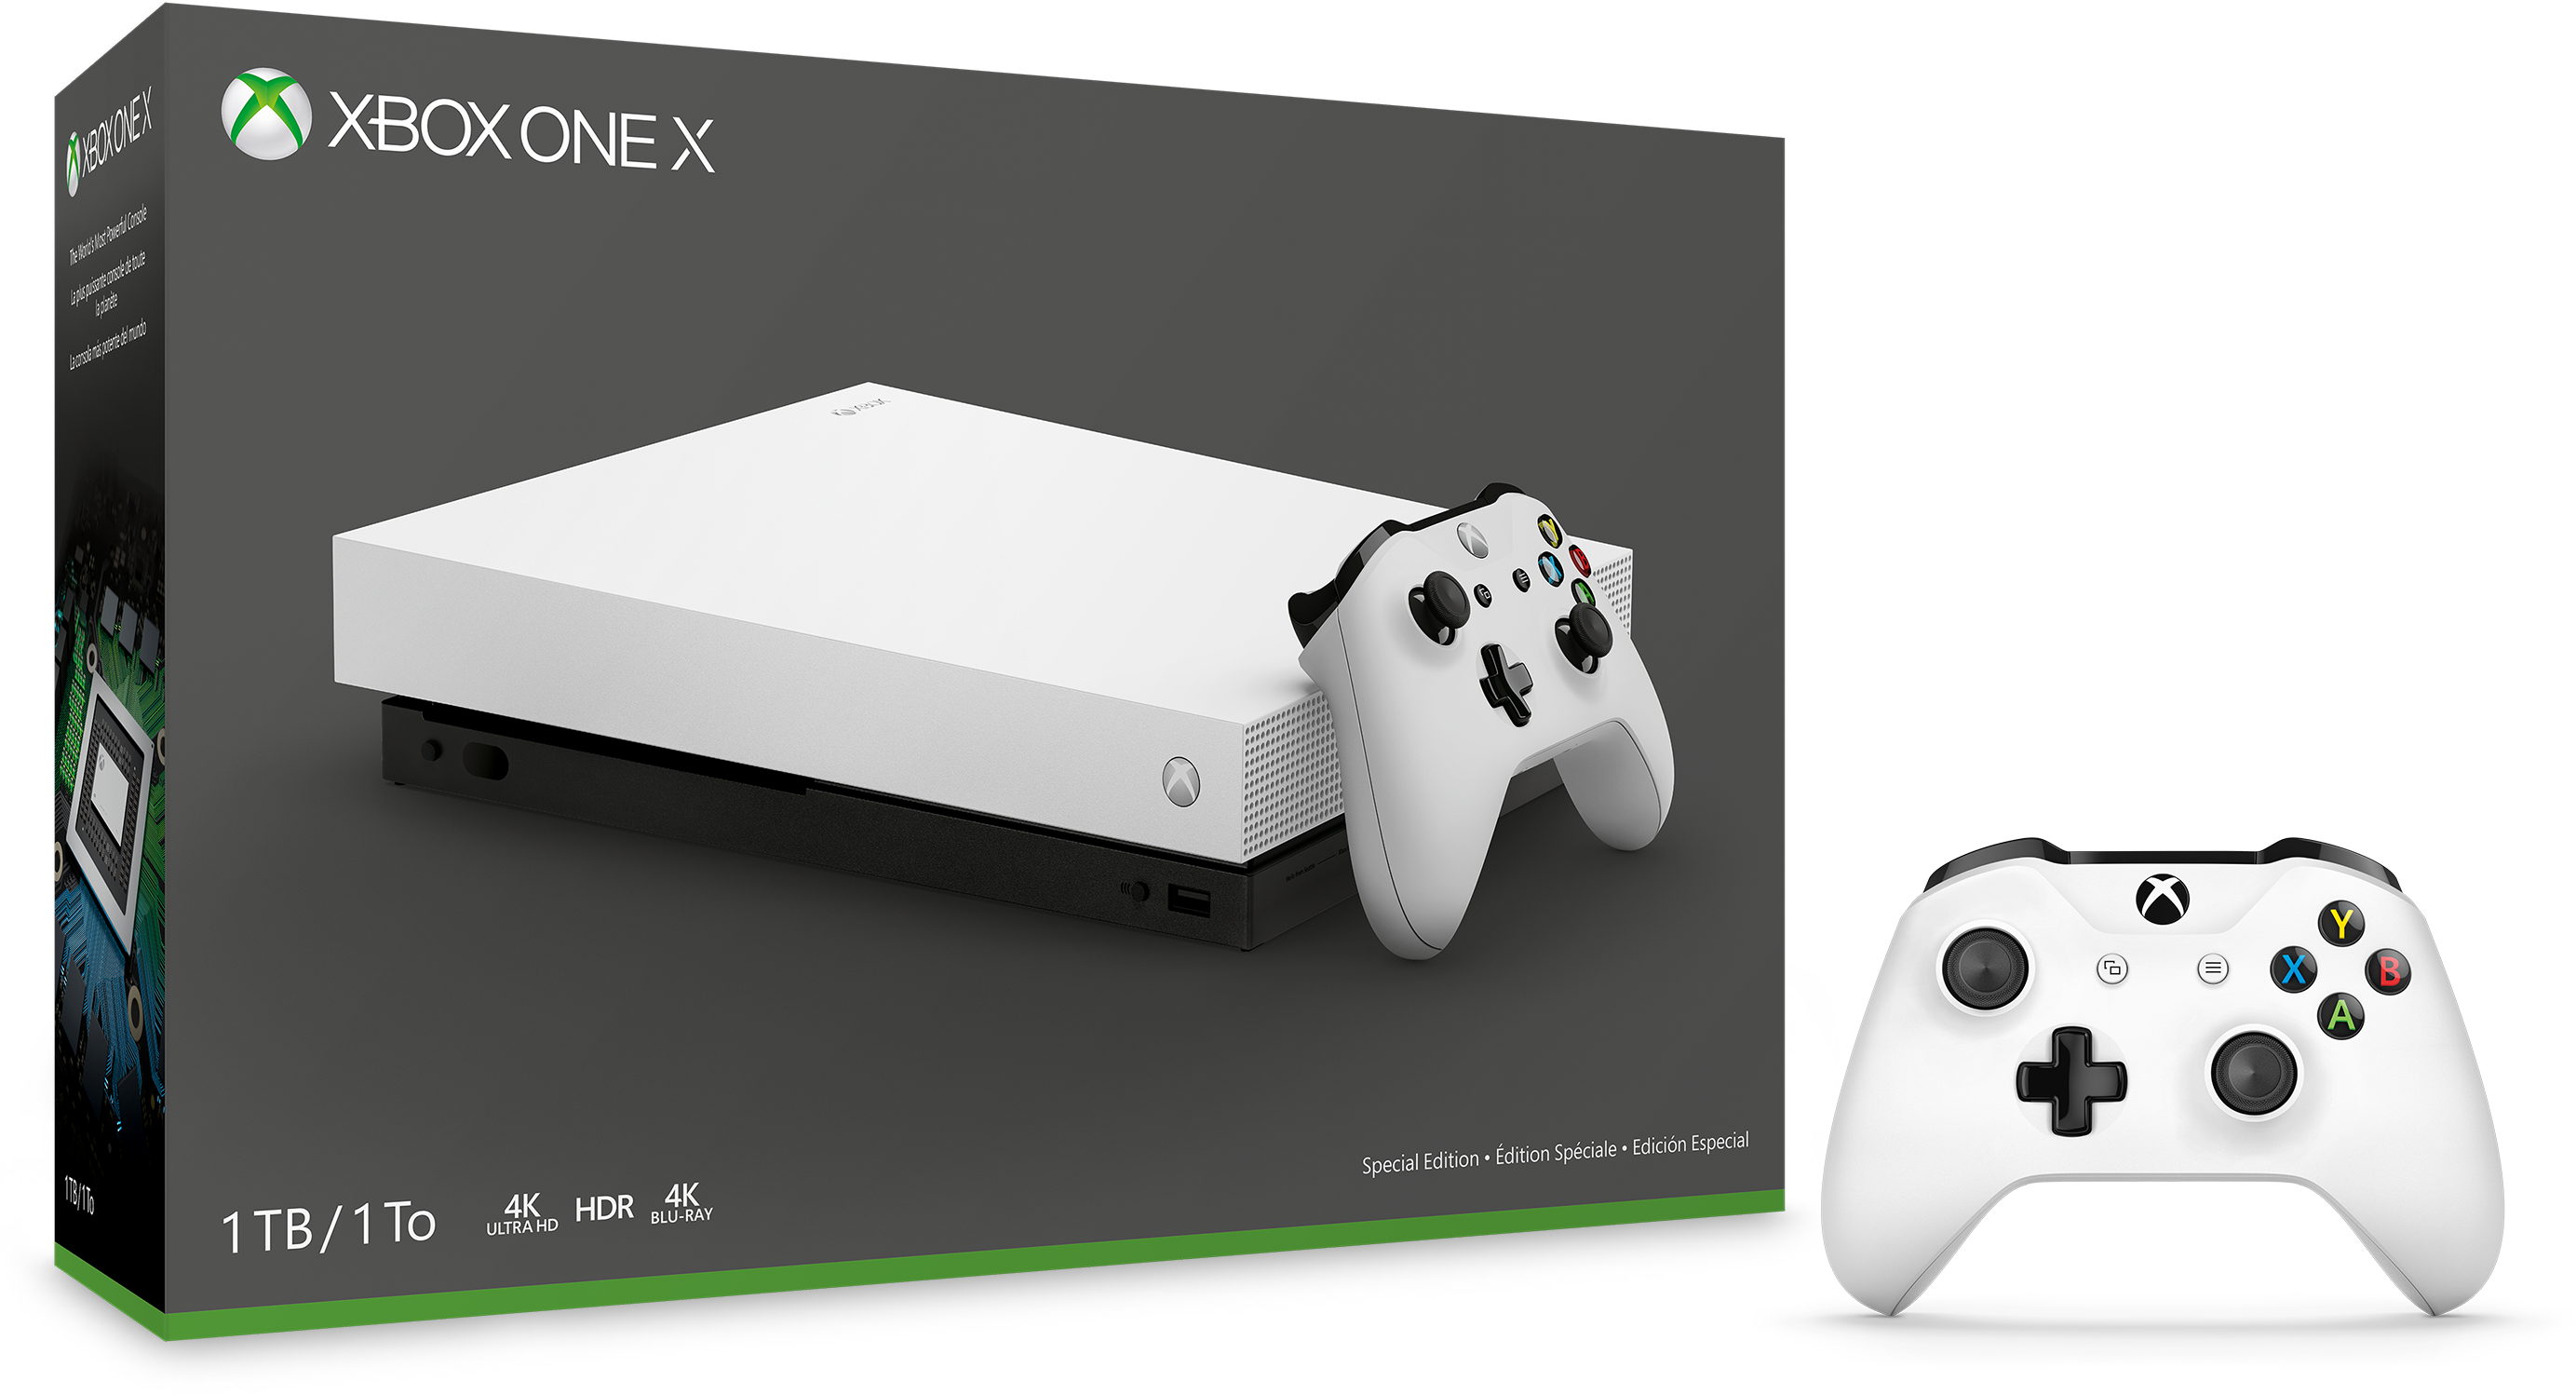 Xbox One X Robot White Special Edition console and extra white Xbox One controller.